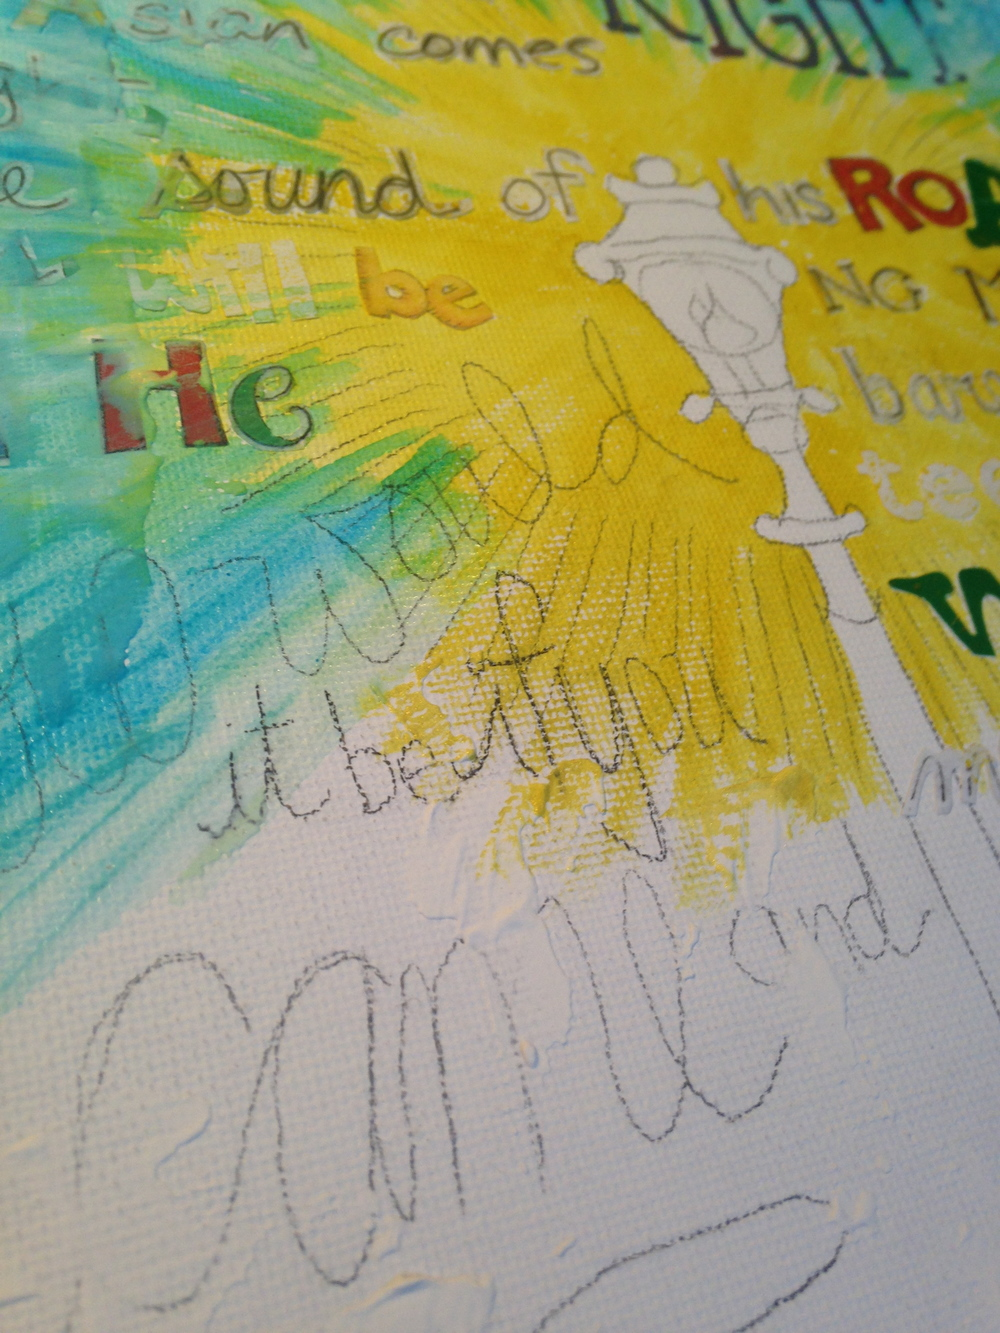 next up... adding color with watercolors started with yellow, added blue